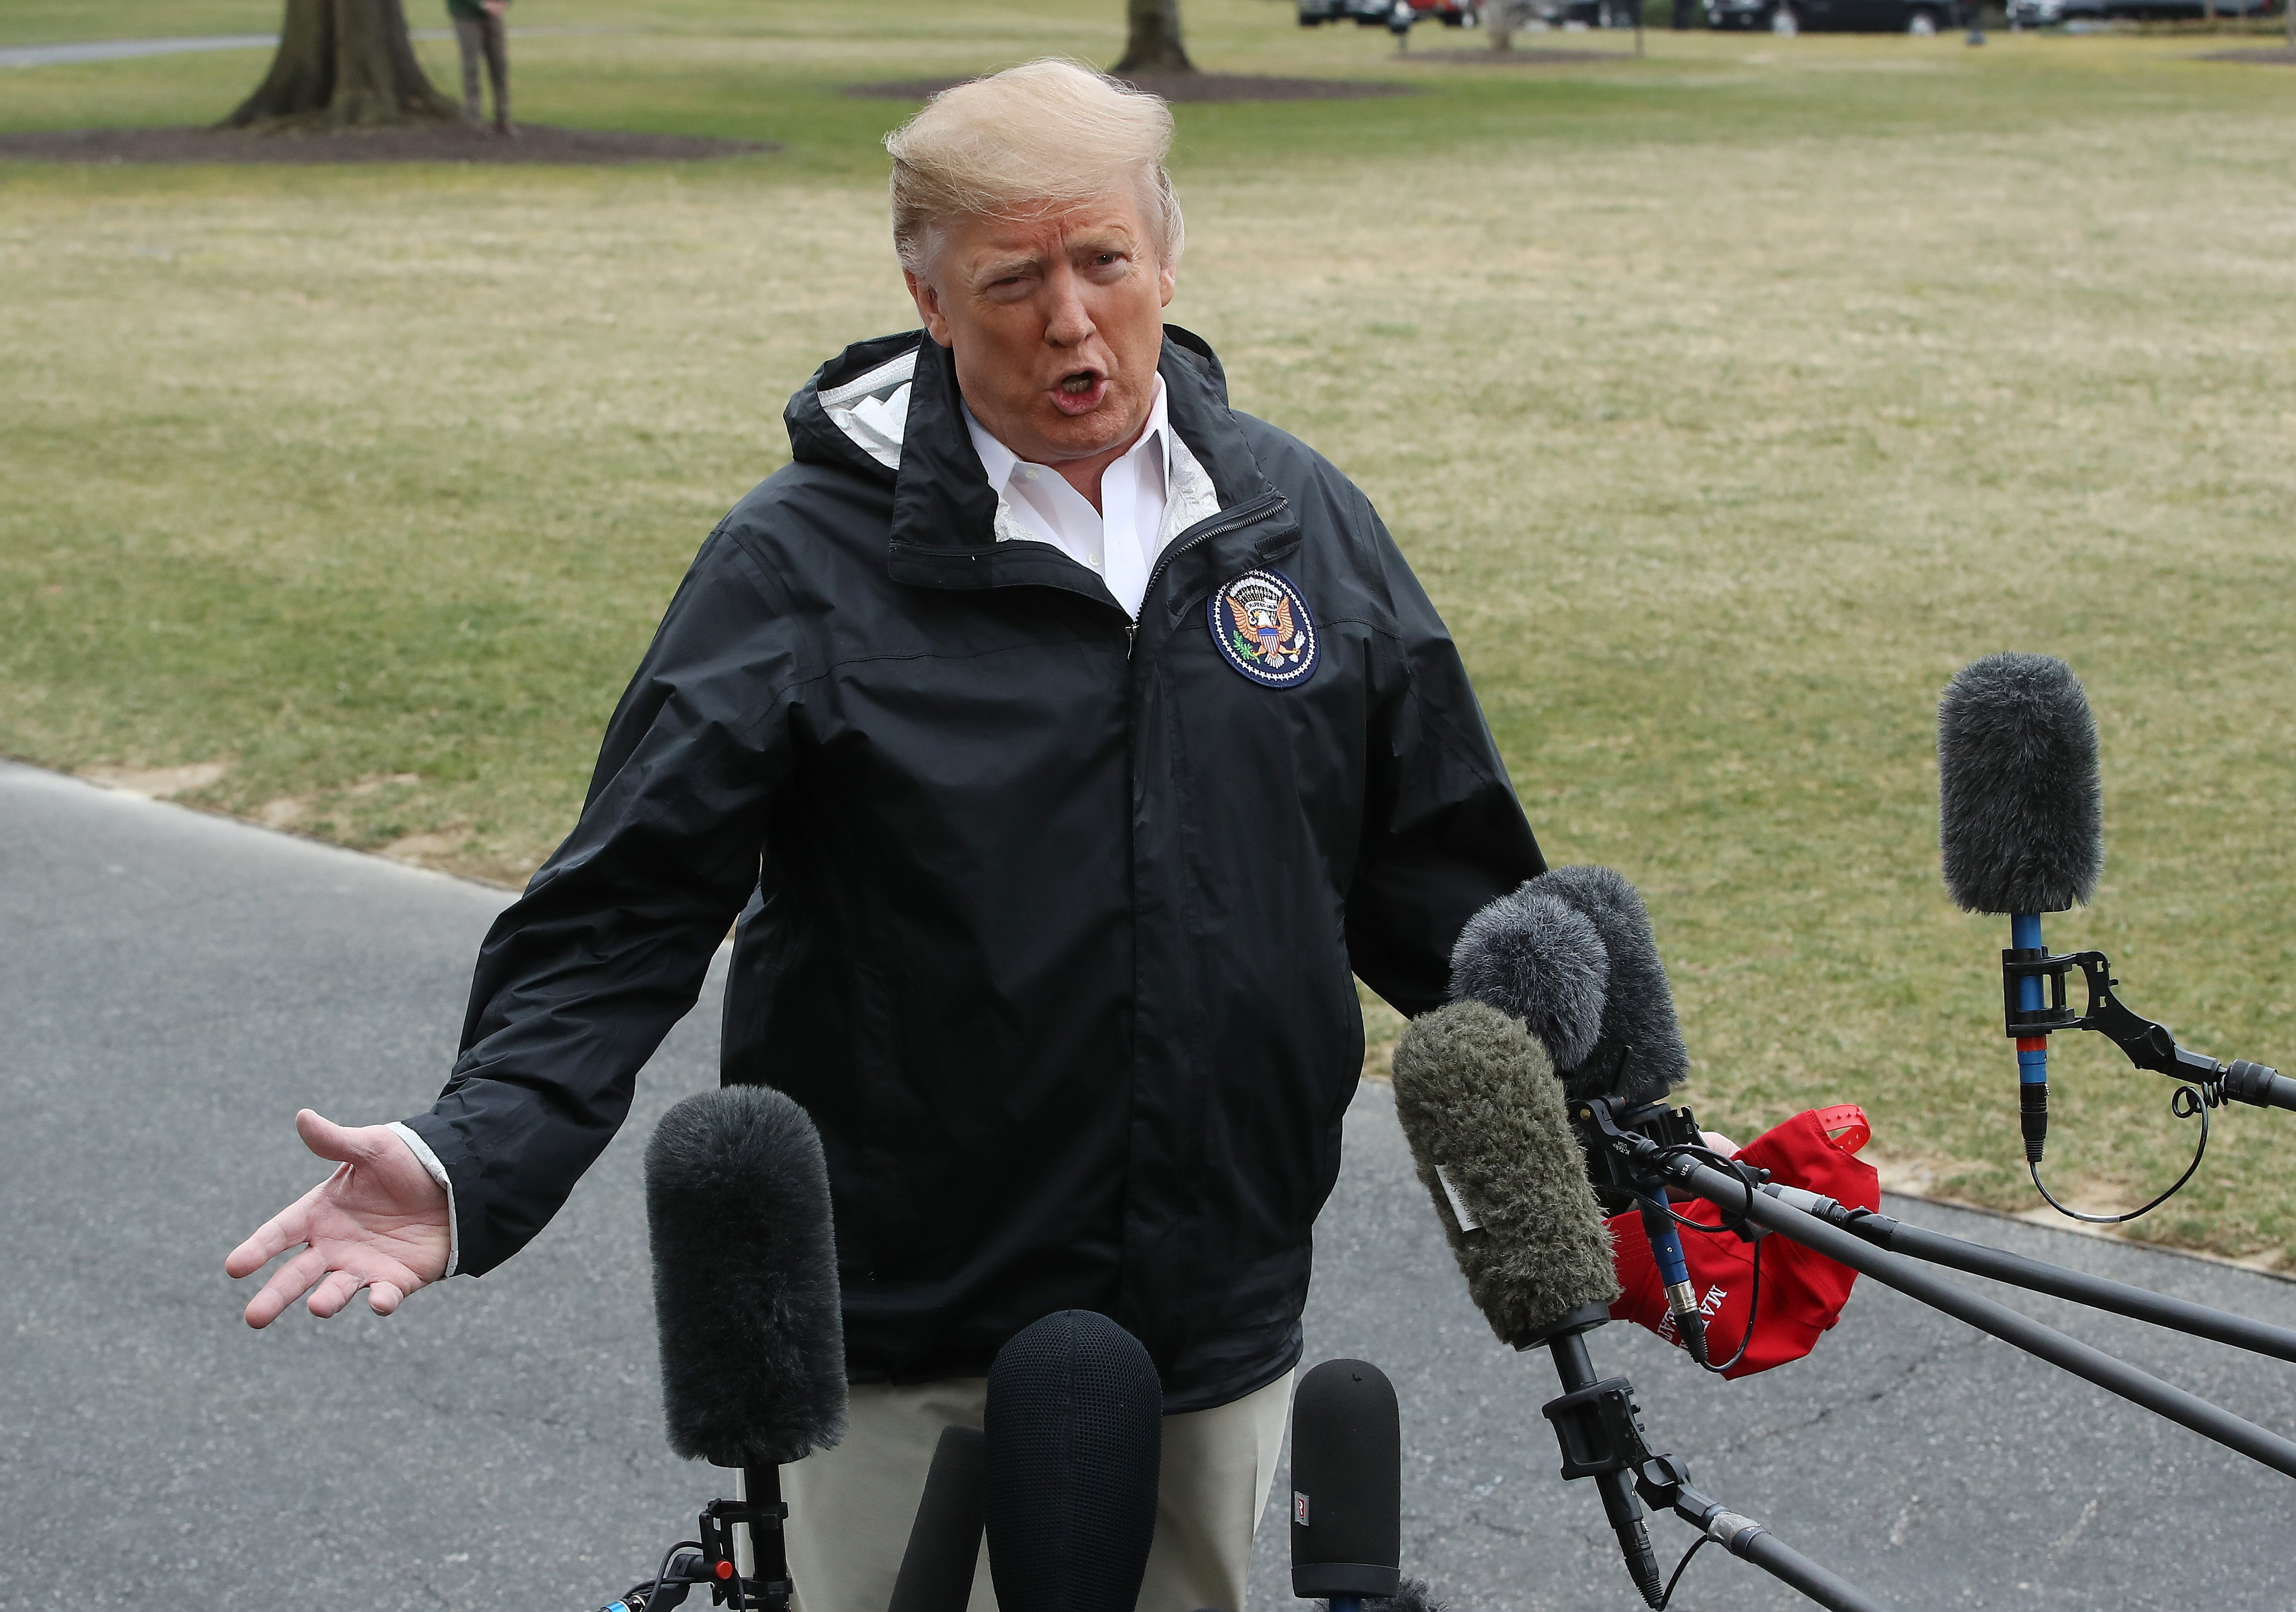 Donald Trump speaking to the media outside the White House before flying to Alabama | Photo: Getty Images